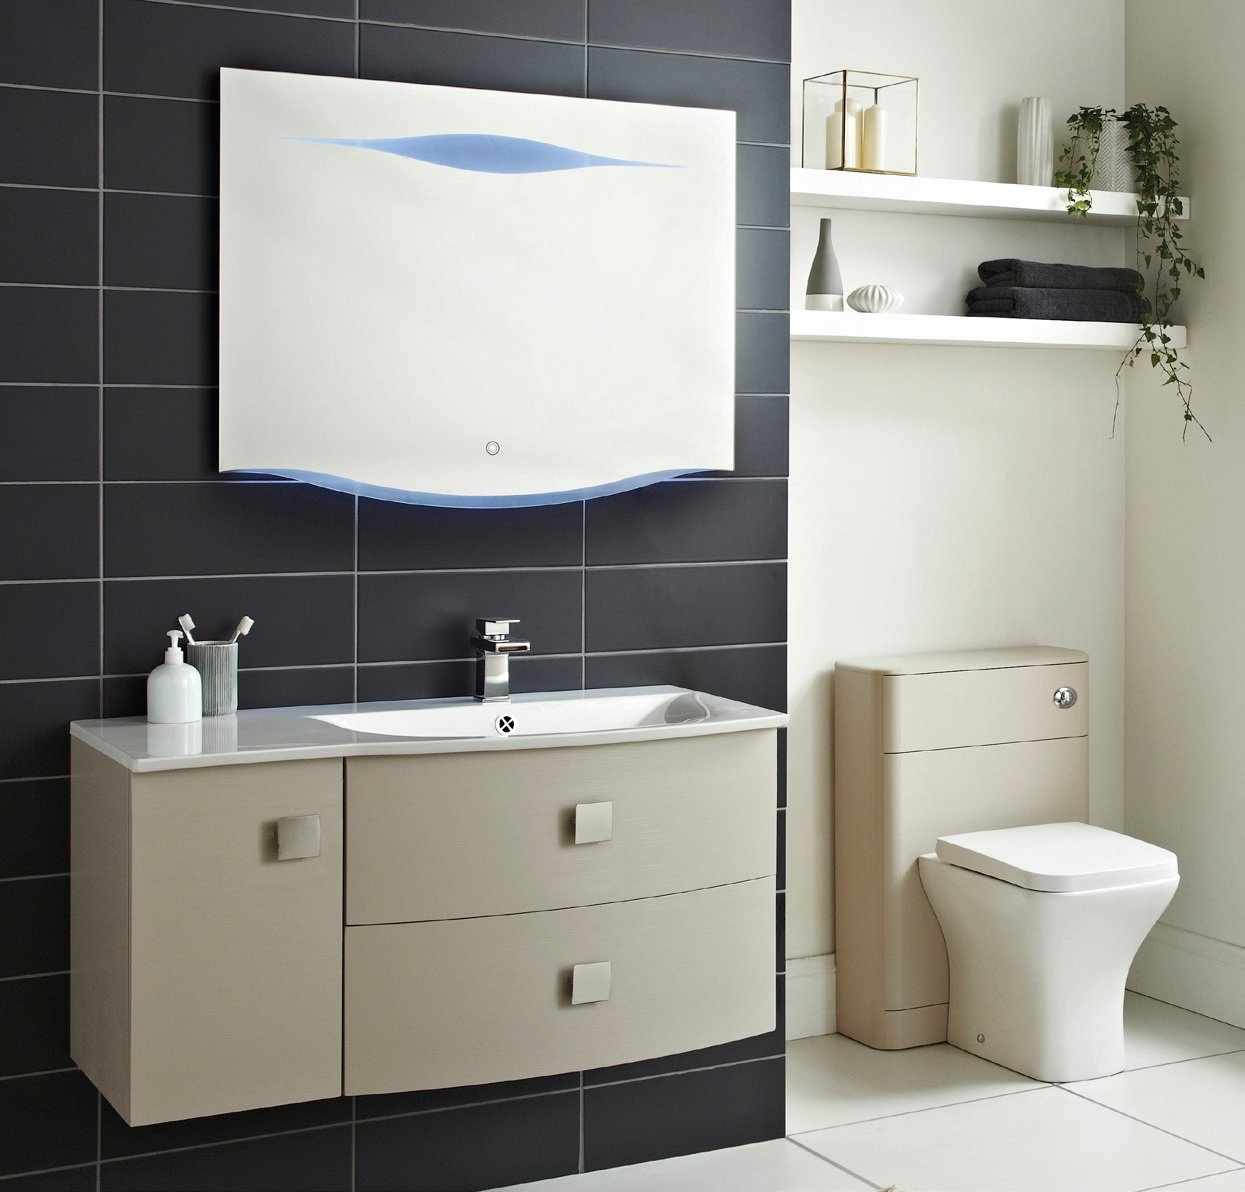 Bathroom design leeds the bathroom house for Bathroom design service